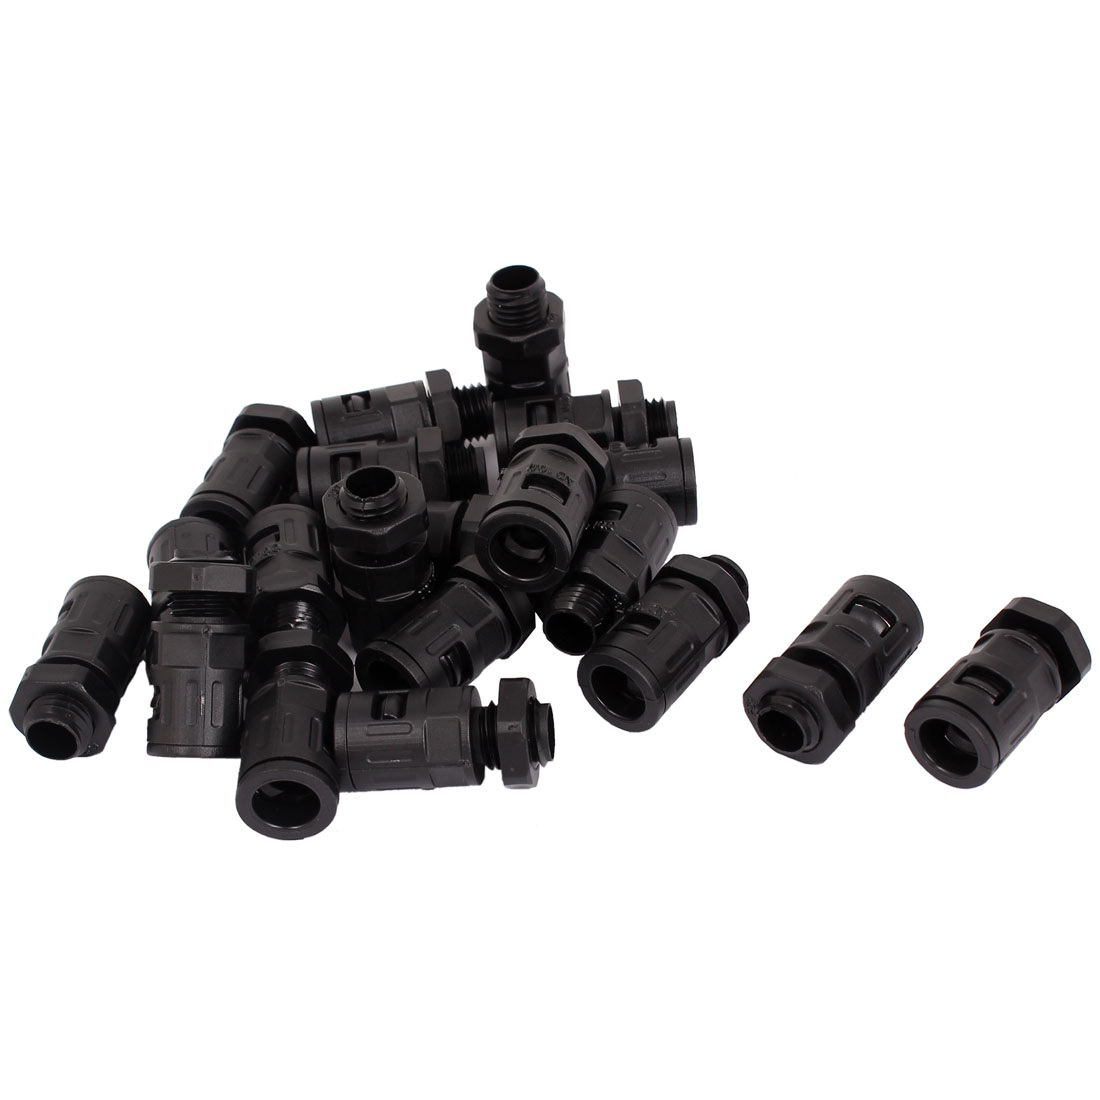 AD10 PG7 PA Flexible Corrugated Pipe Round Cable Hose Connector Black 20Pcs